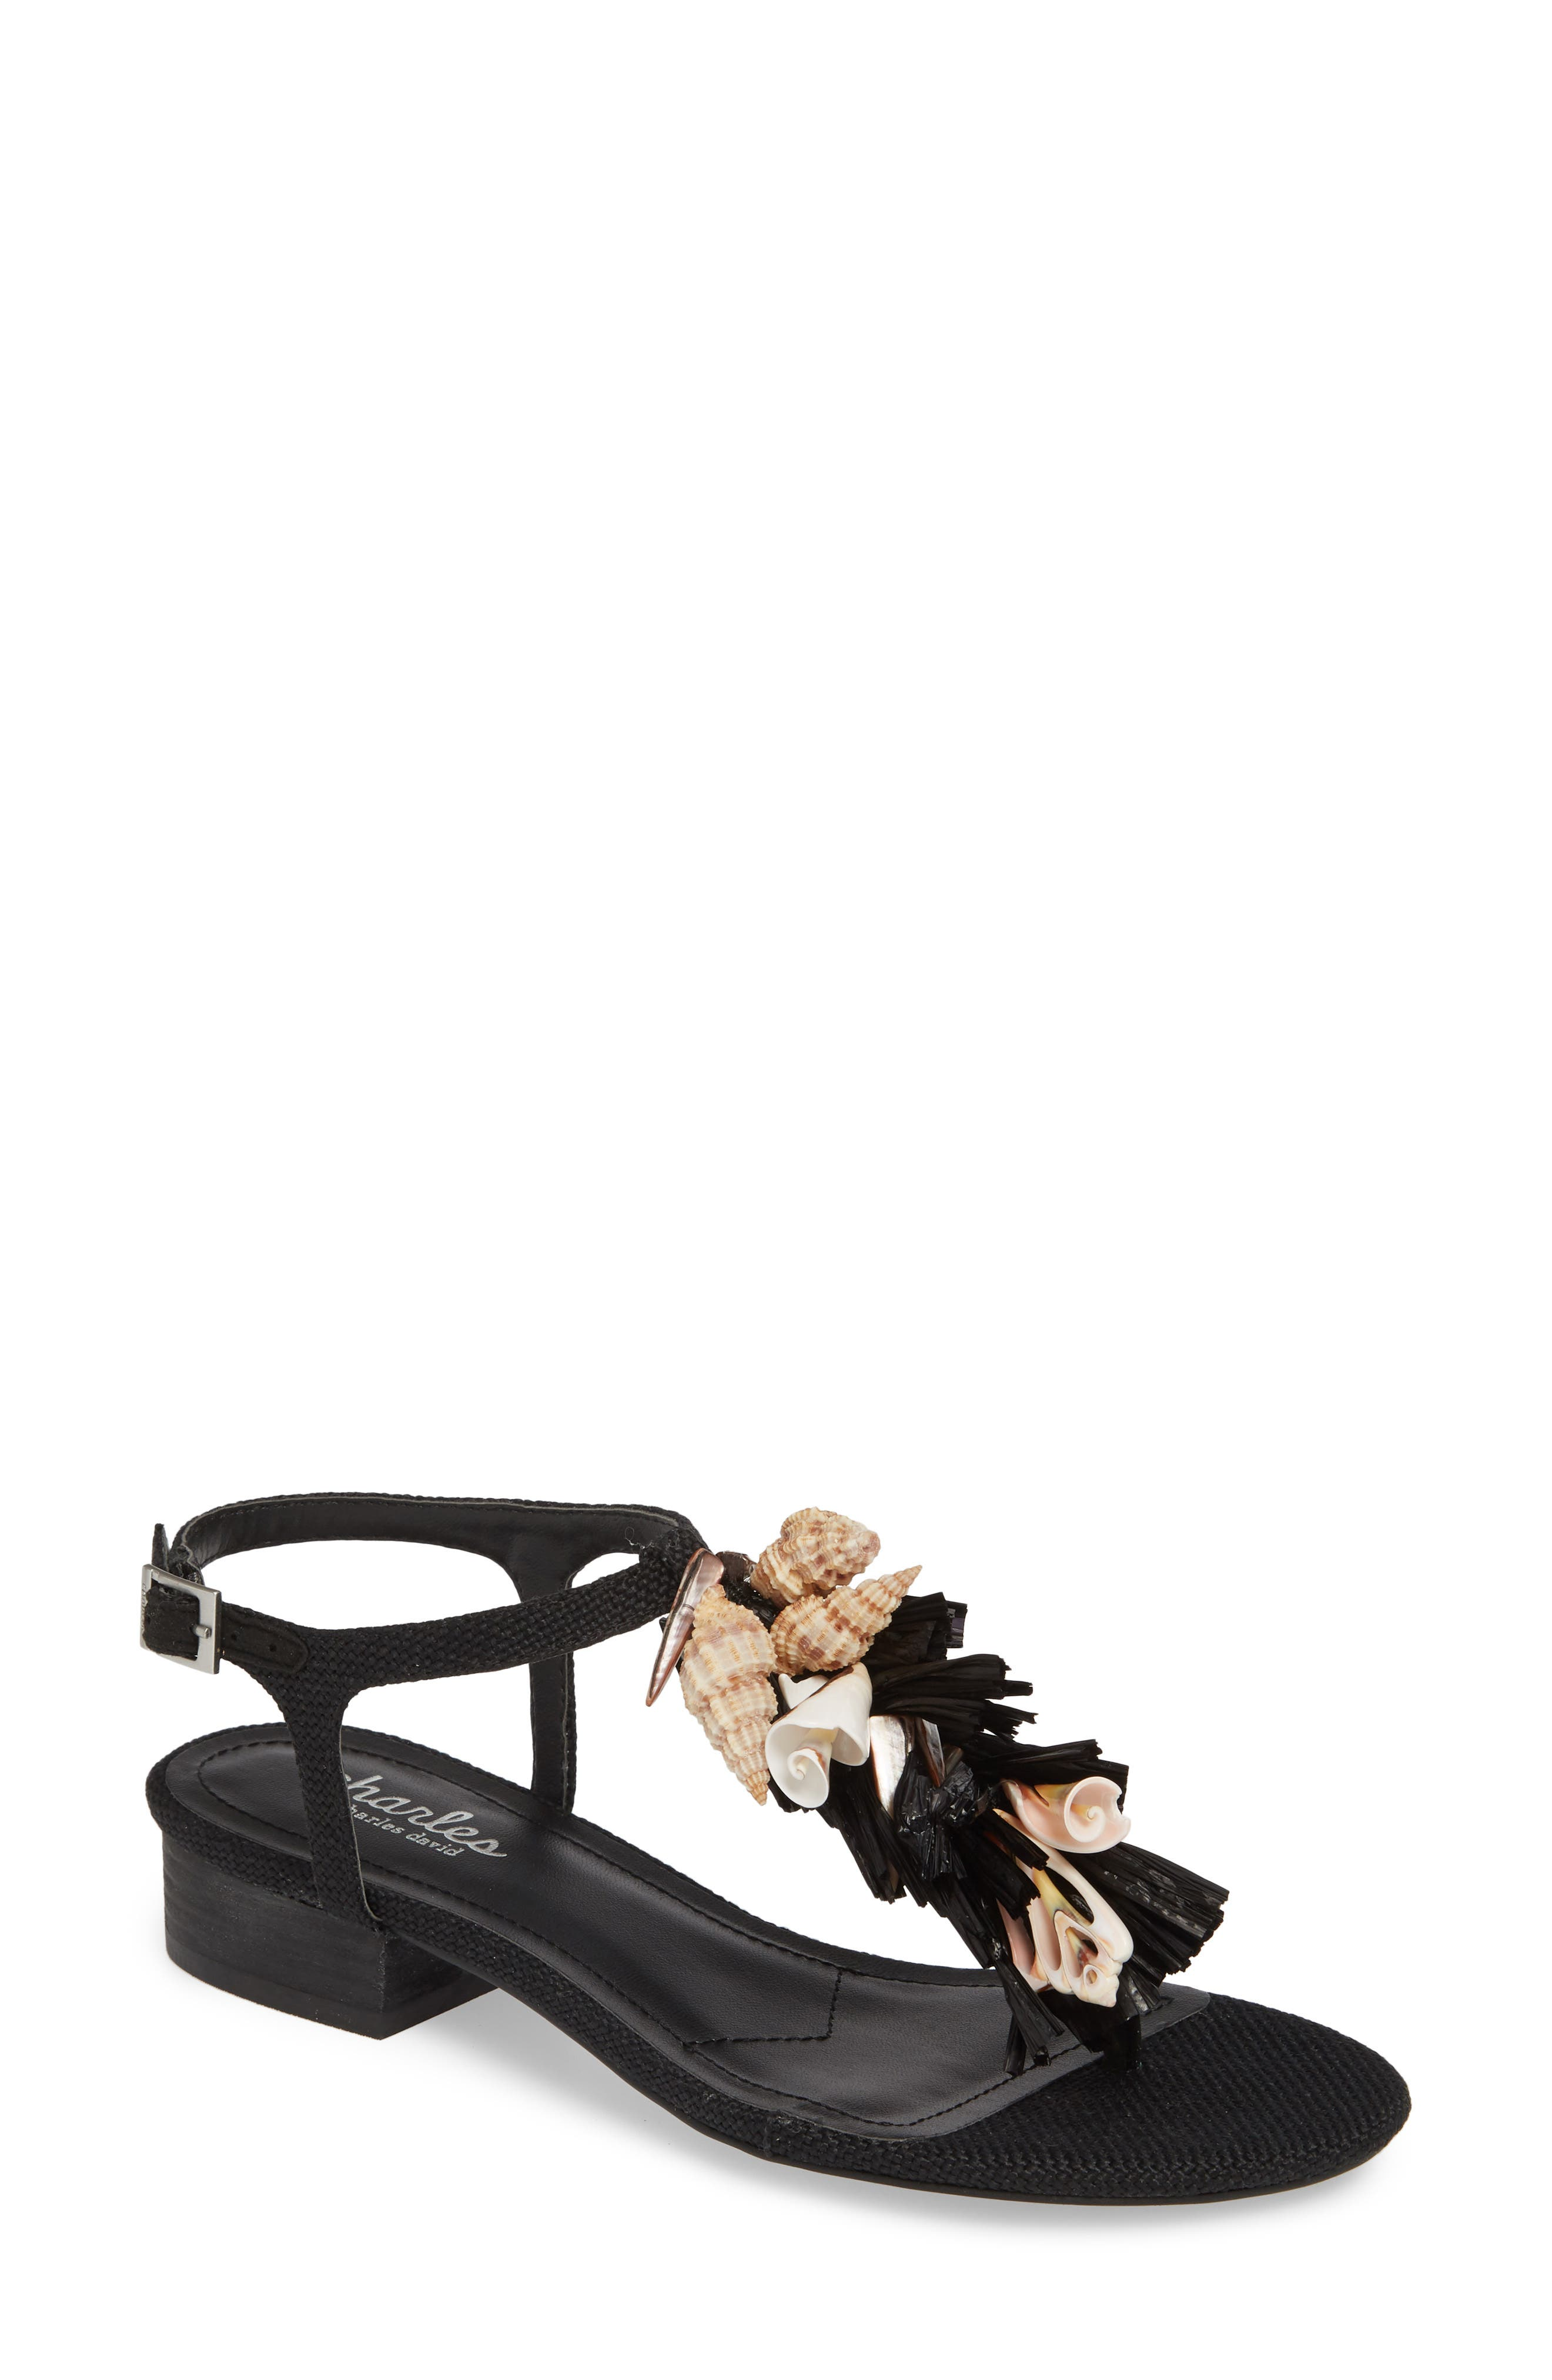 CHARLES BY CHARLES DAVID, Seashell Sandal, Main thumbnail 1, color, BLACK FABRIC